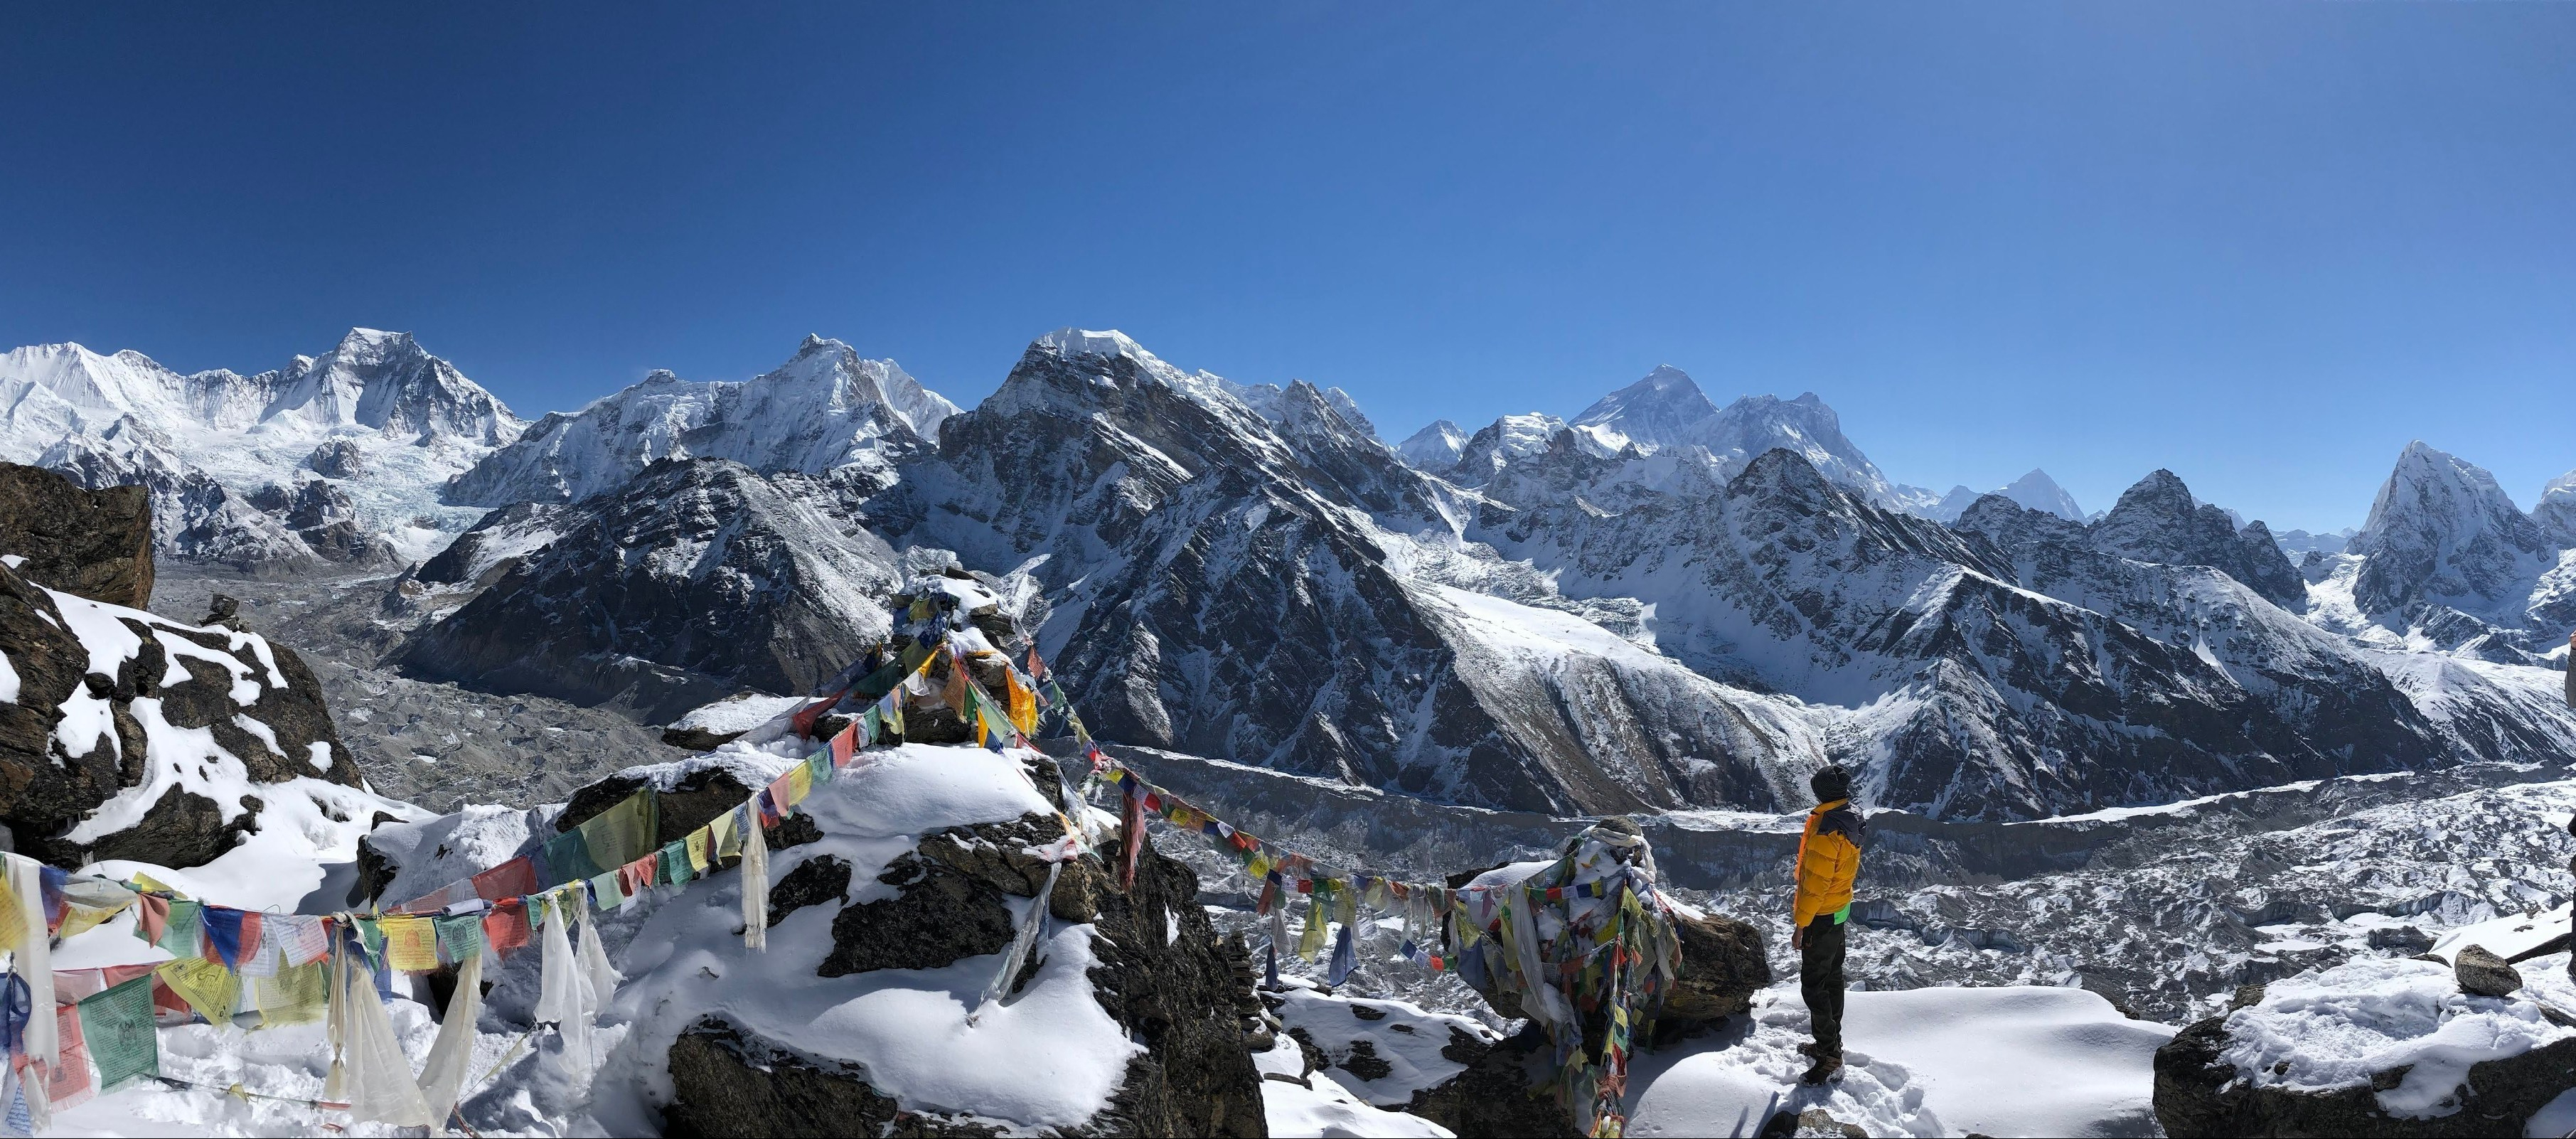 The Best Left Turn- Gokyo Valley, Day 1